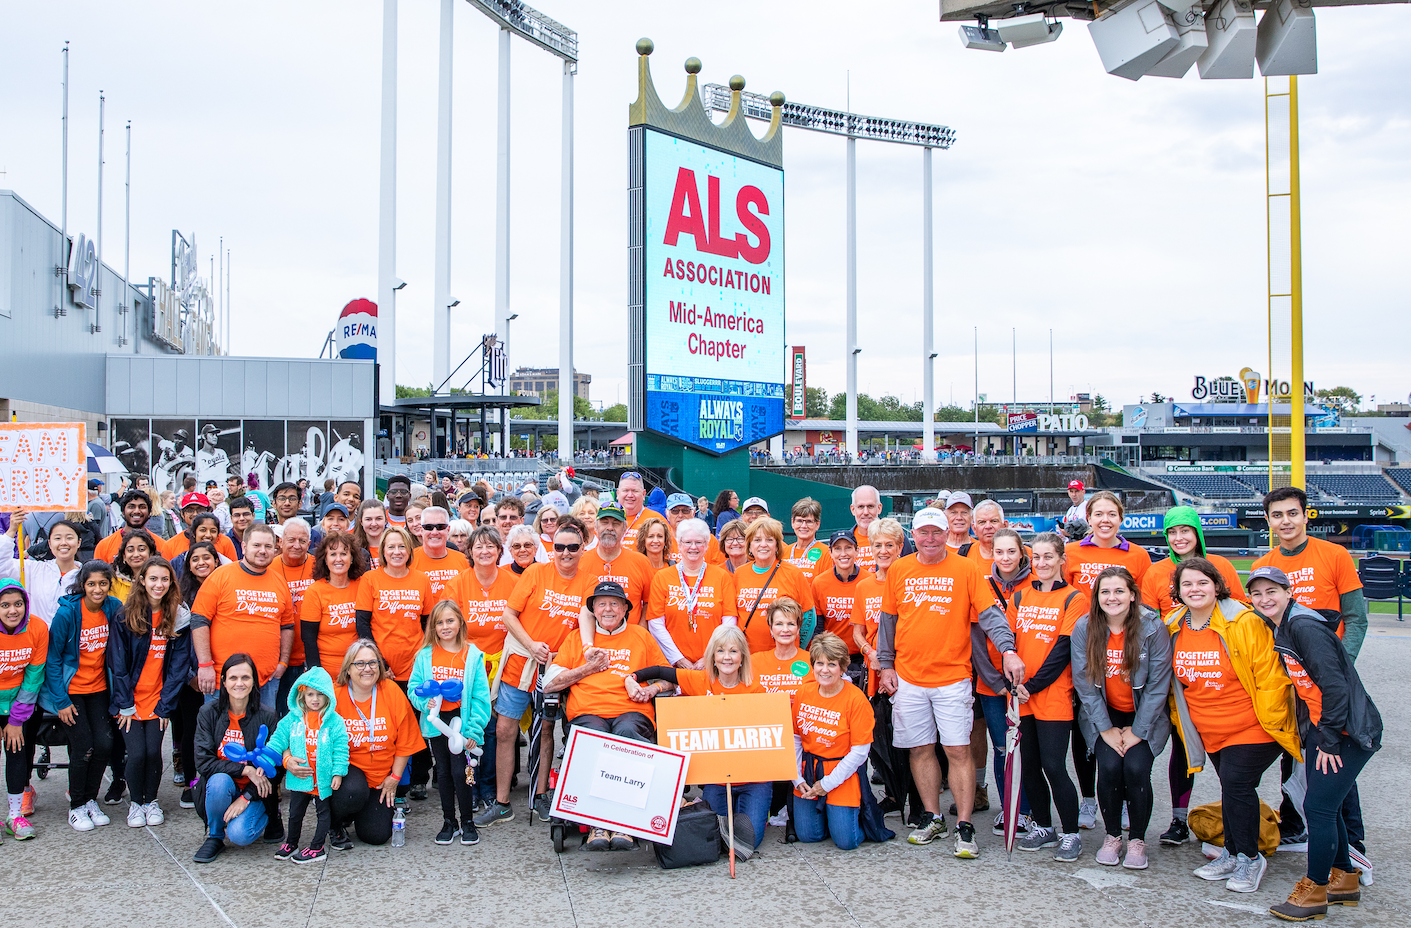 The ALS Association Mid-America Chapter – KC Walk to Defeat ALS